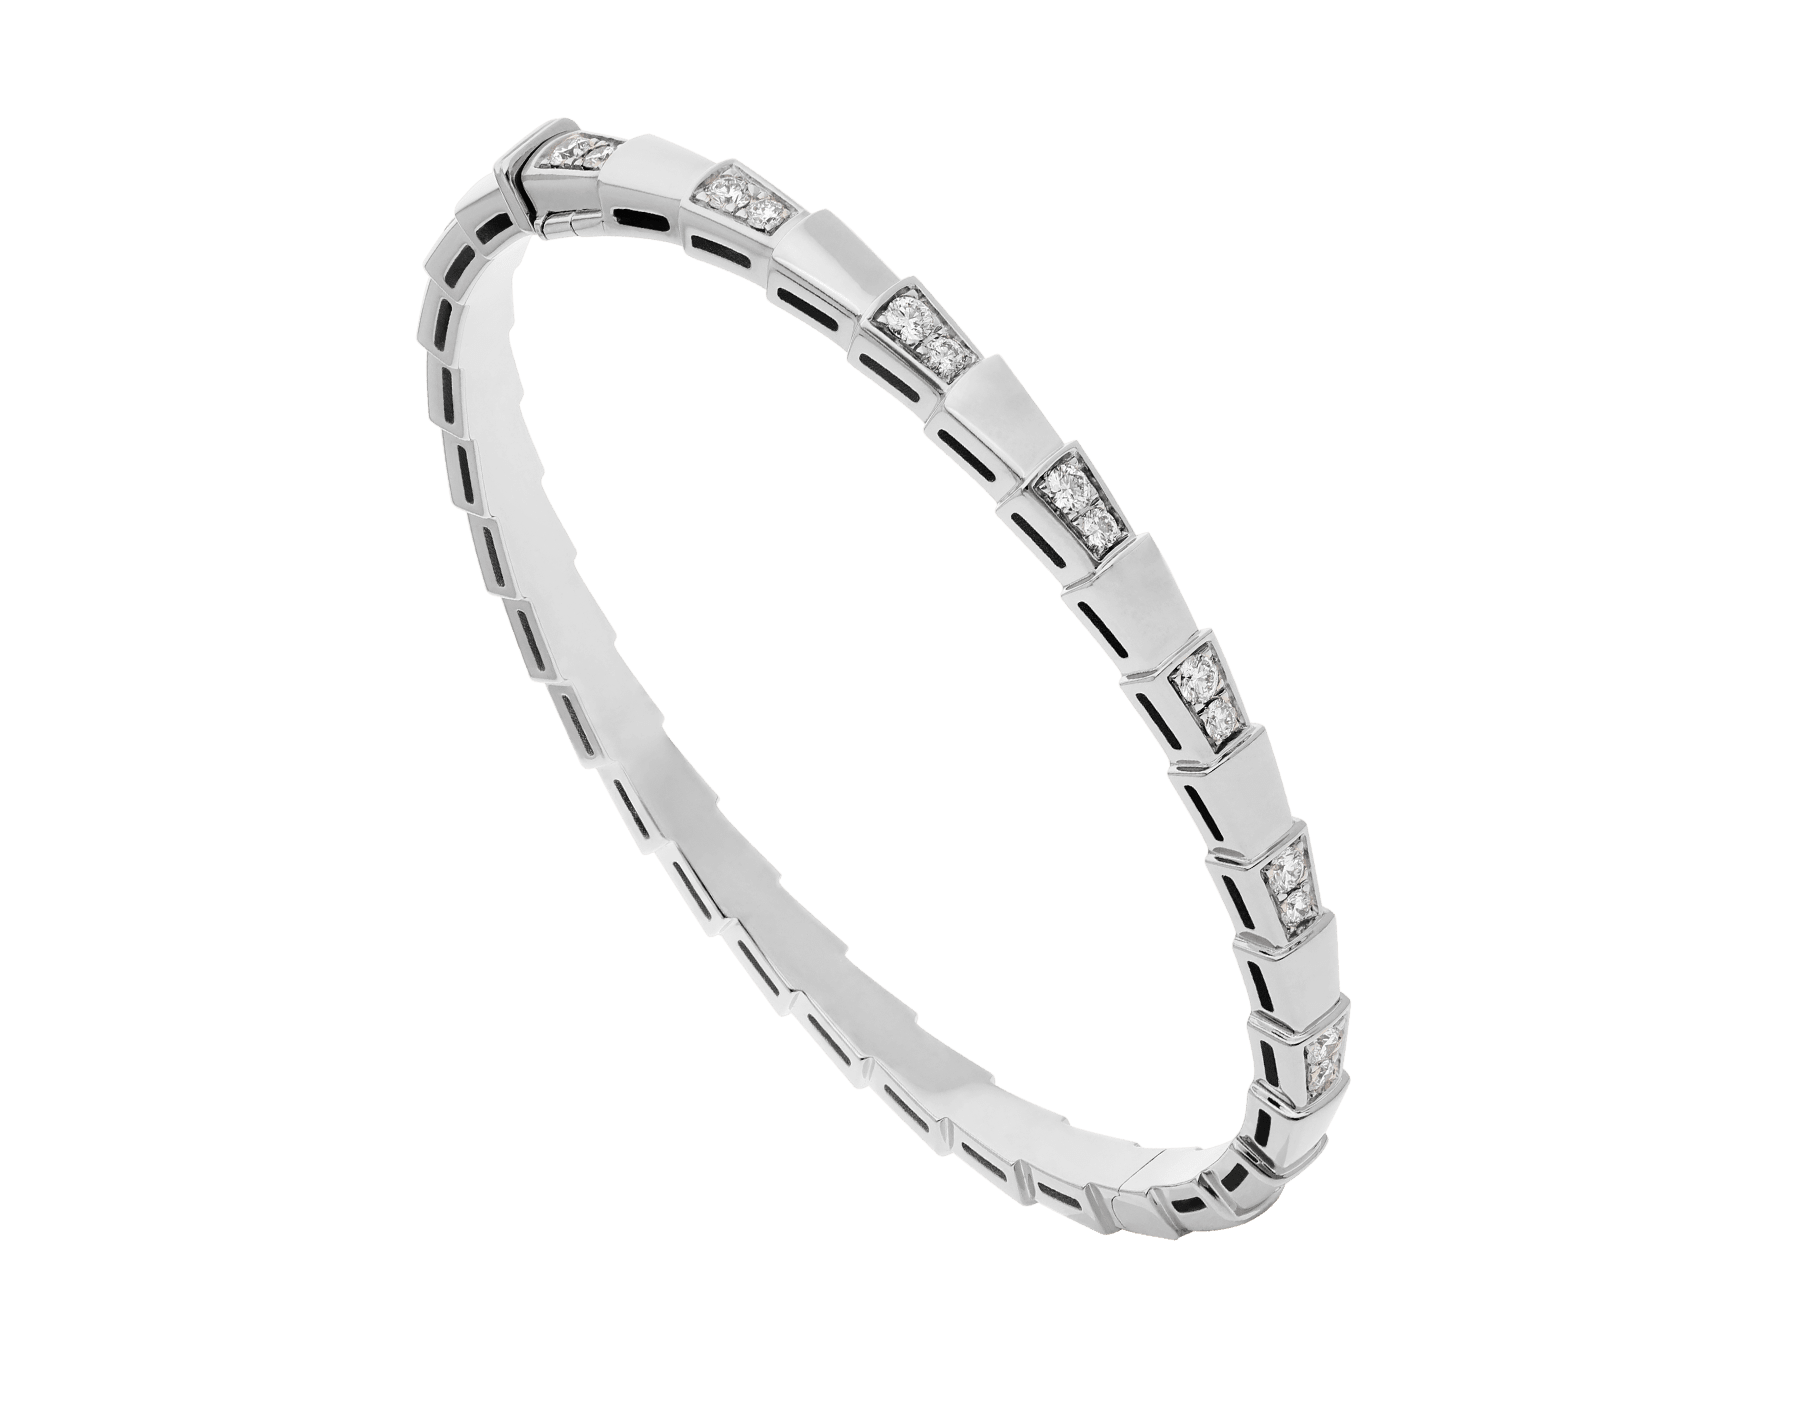 Serpenti Viper 18 kt white gold bracelet set with demi pavé diamonds .(height 4 mm) BR858420 image 1